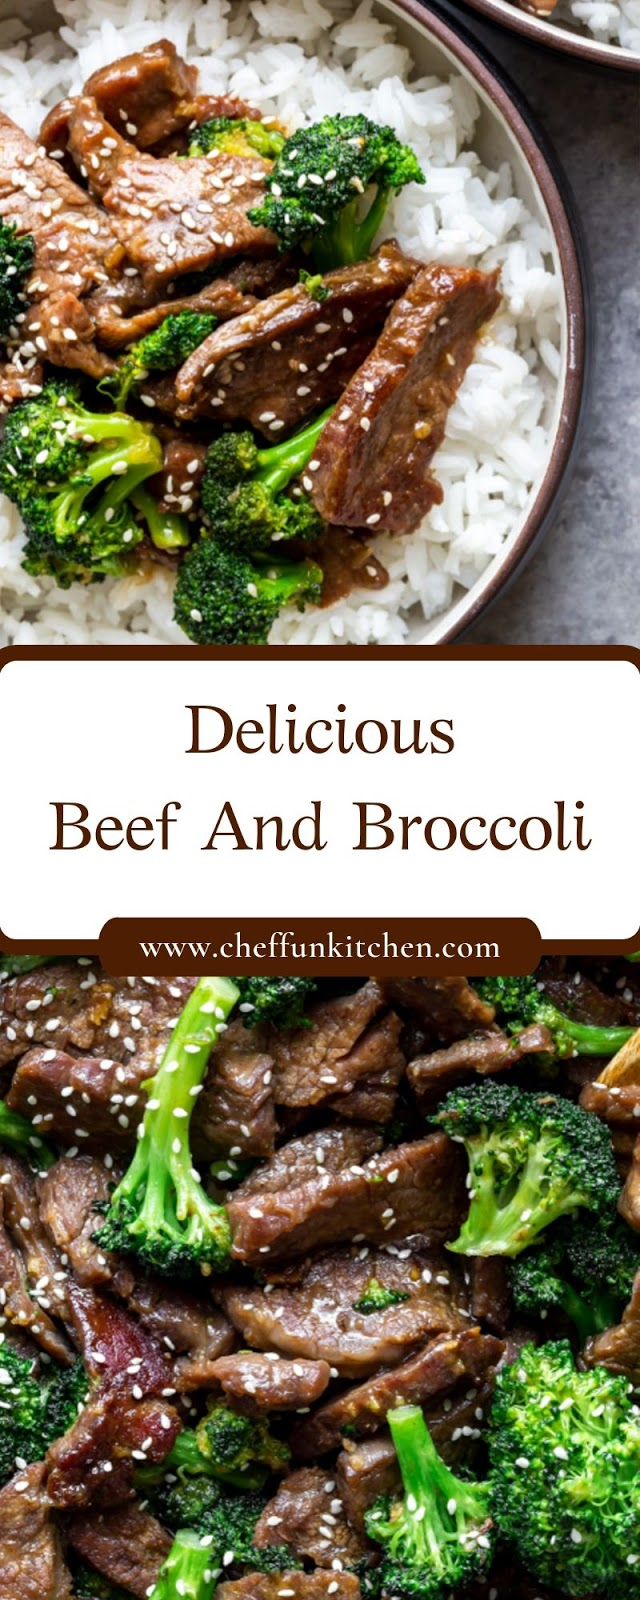 Delicious Beef And Broccoli